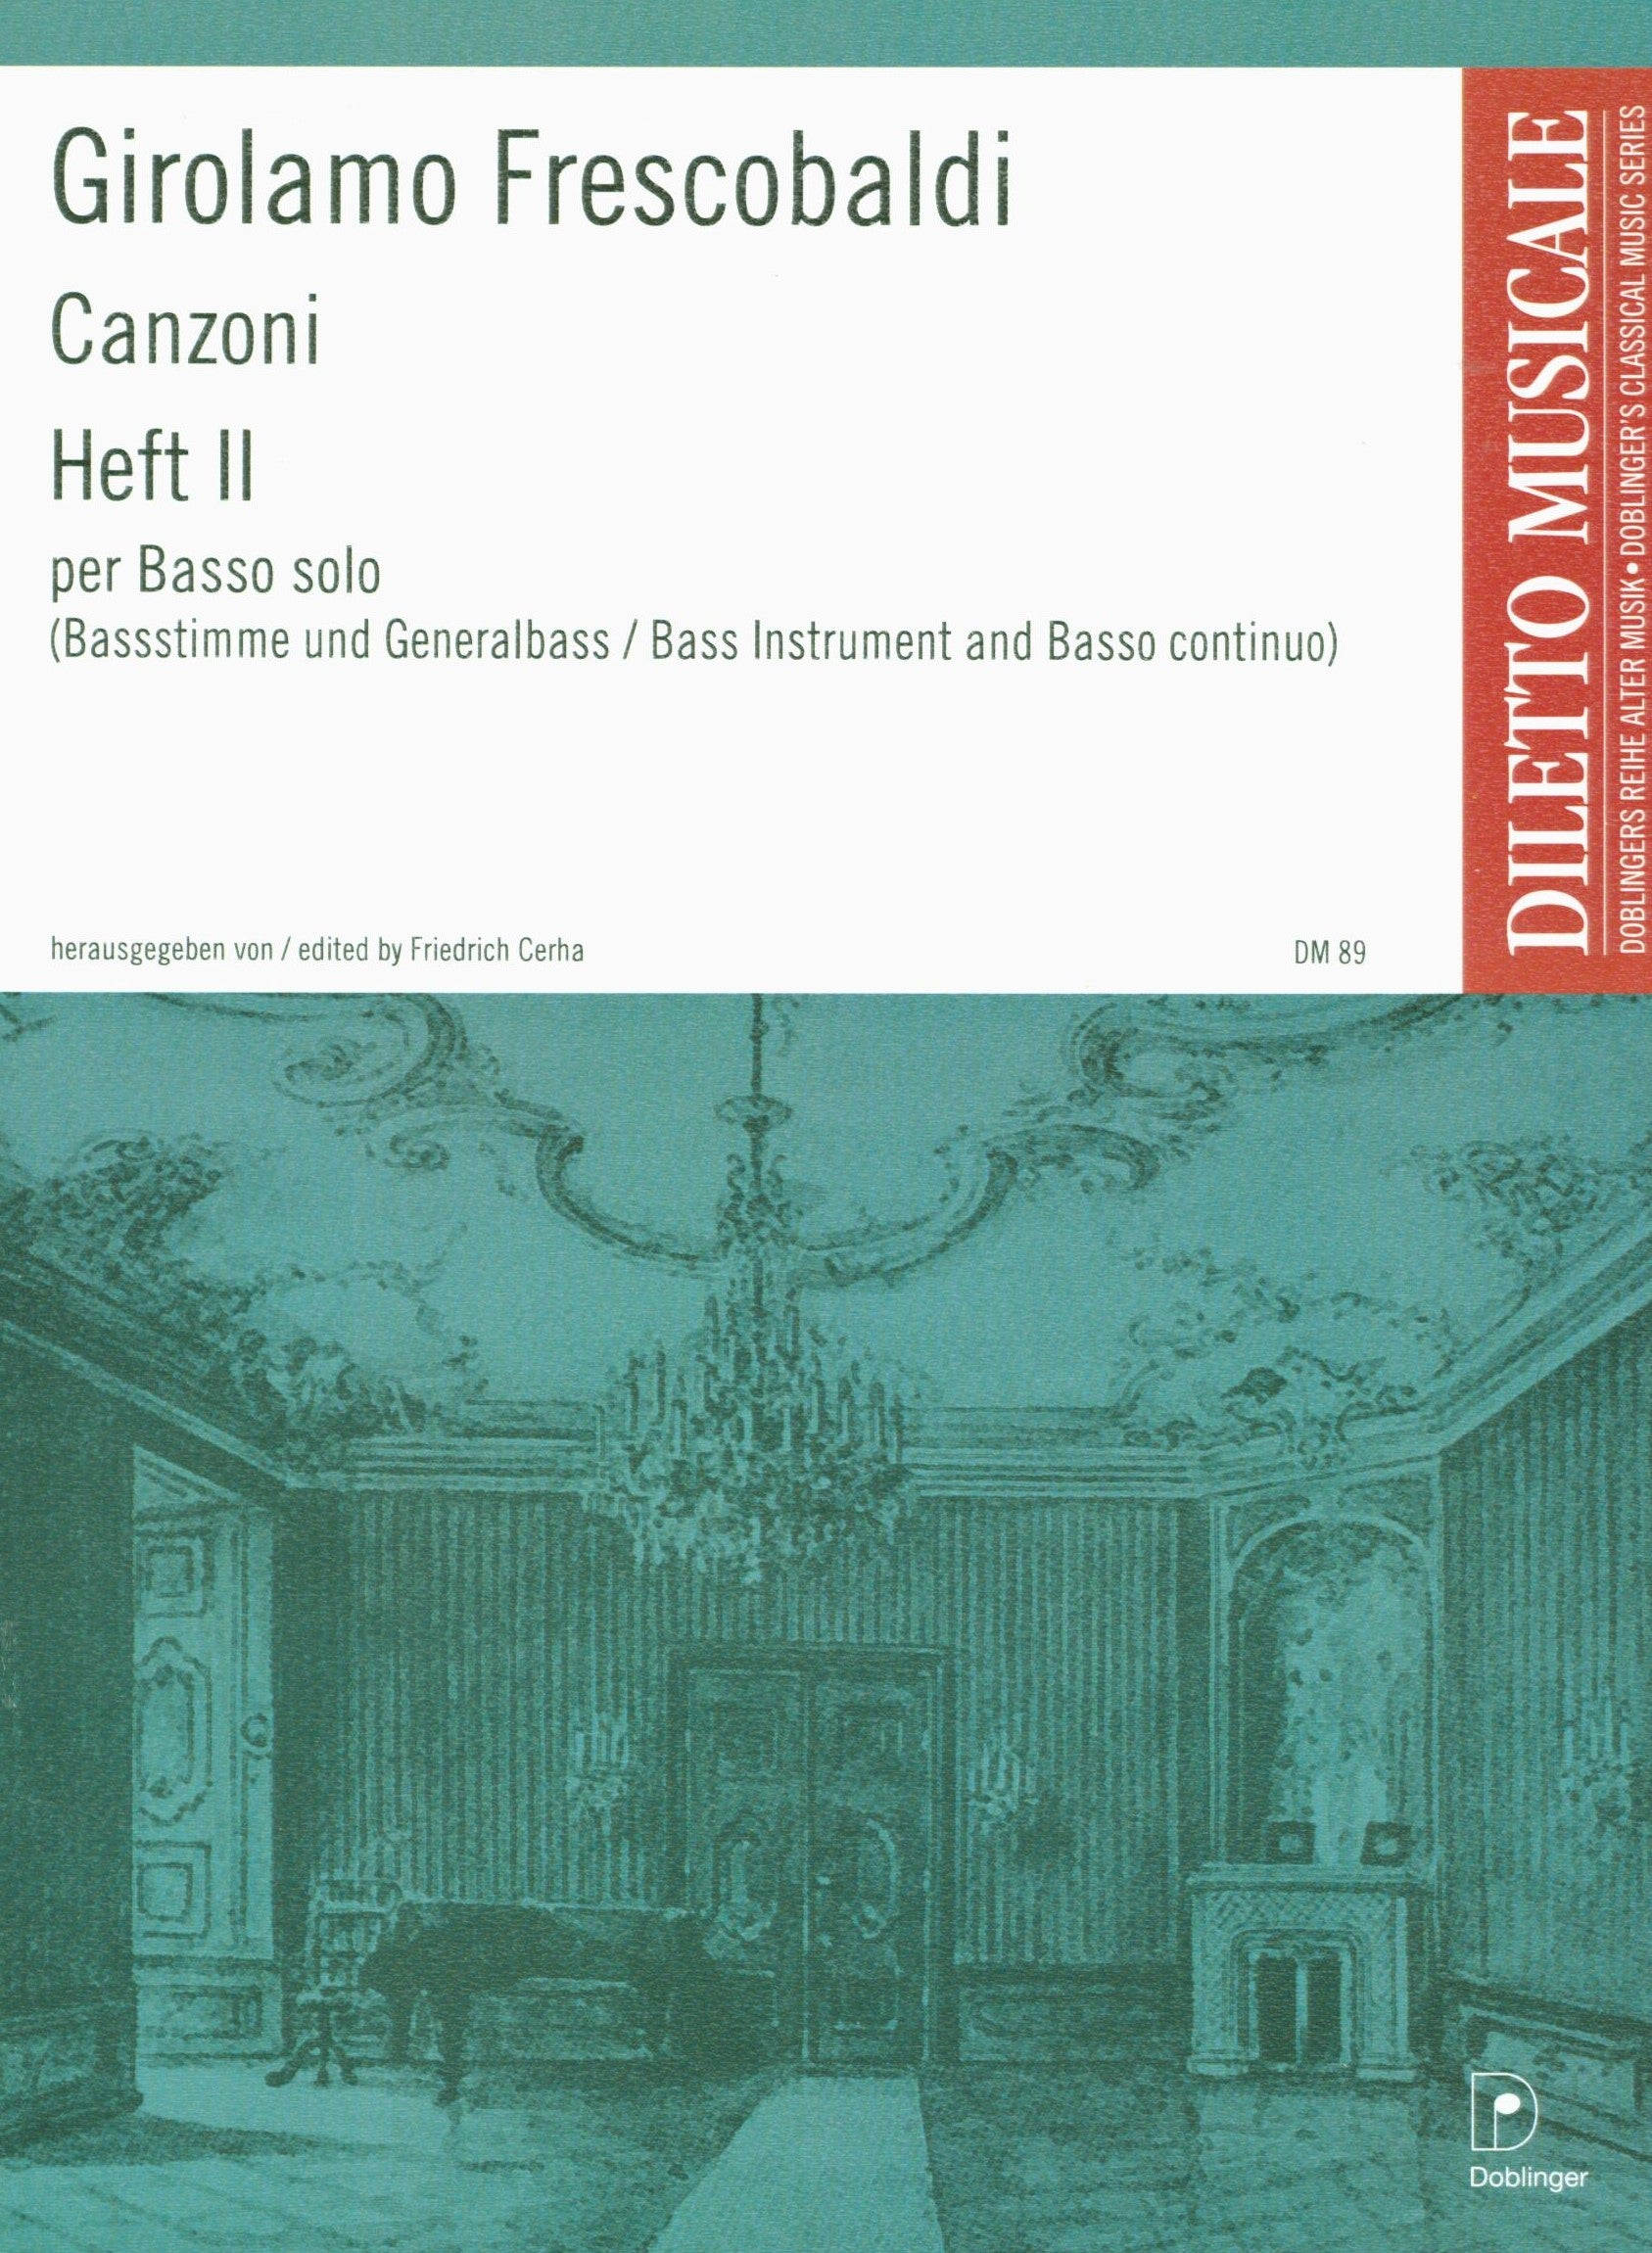 Frescobaldi: Canzoni for Solo Bass Instrument & Continuo - Volume 2